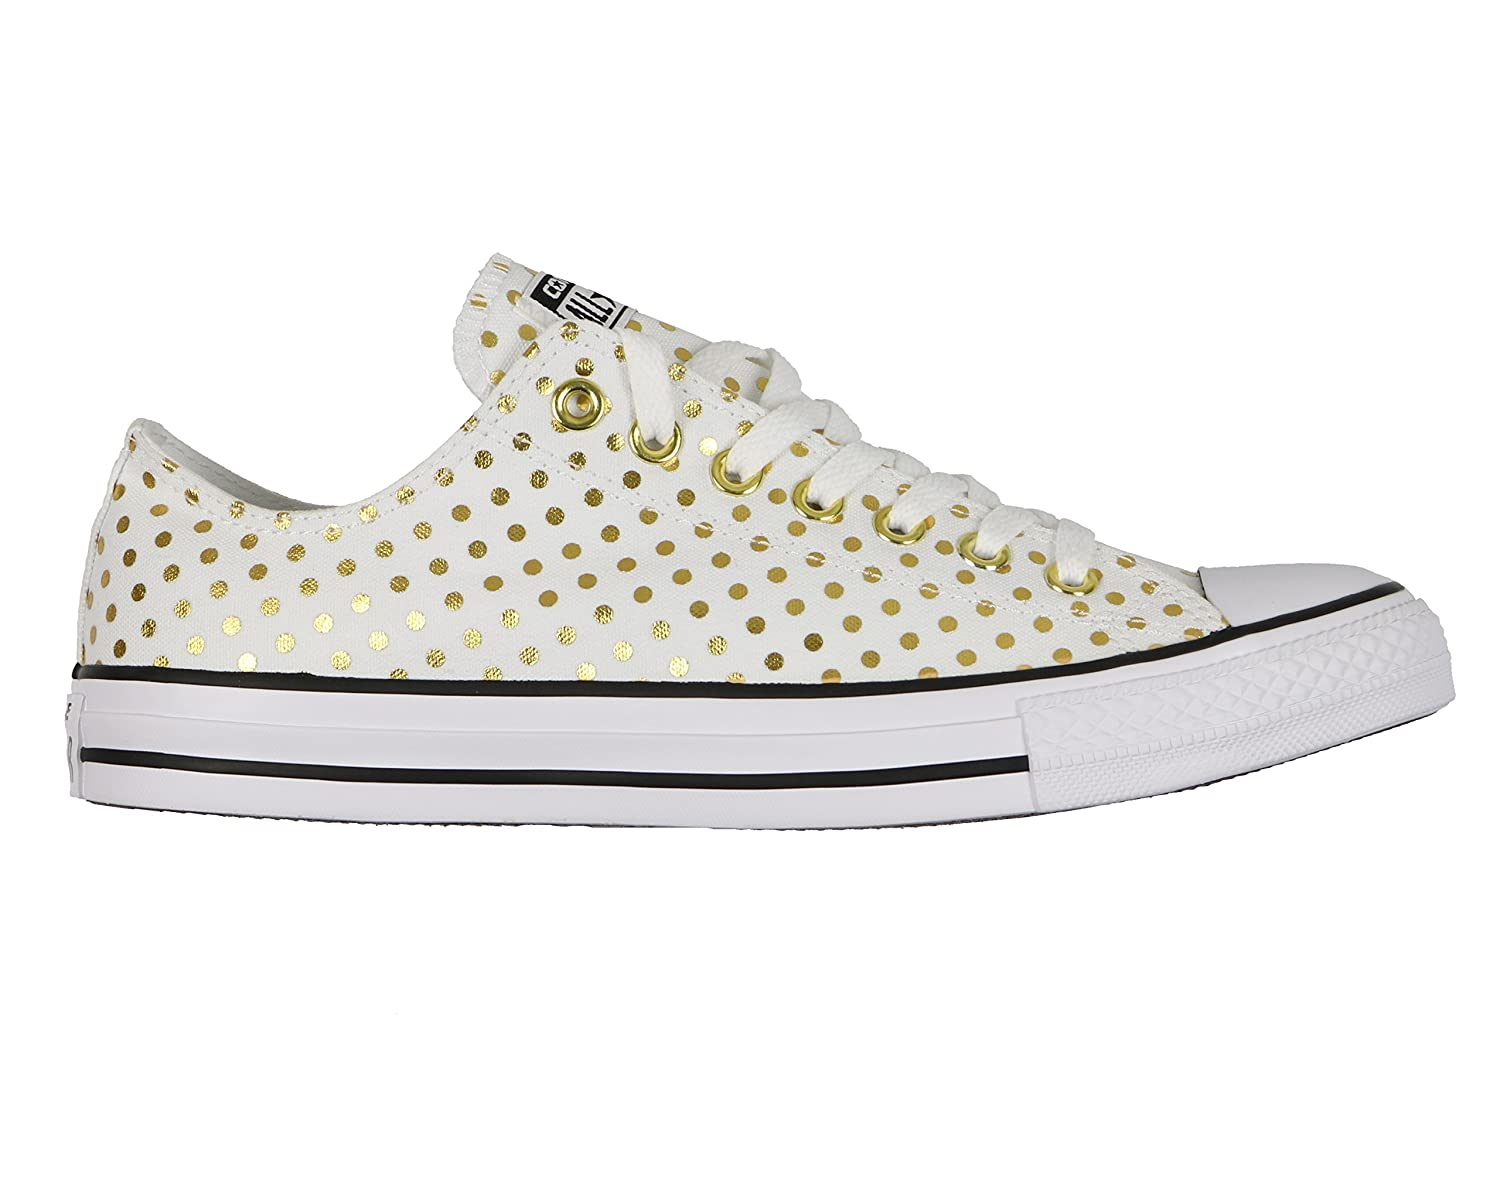 Converse Women's Chuck Taylor All Star 2018 Seasonal Low Top Sneaker B06WRS2NFM Mens 9/Womens 11|Dots White/Gold 9440